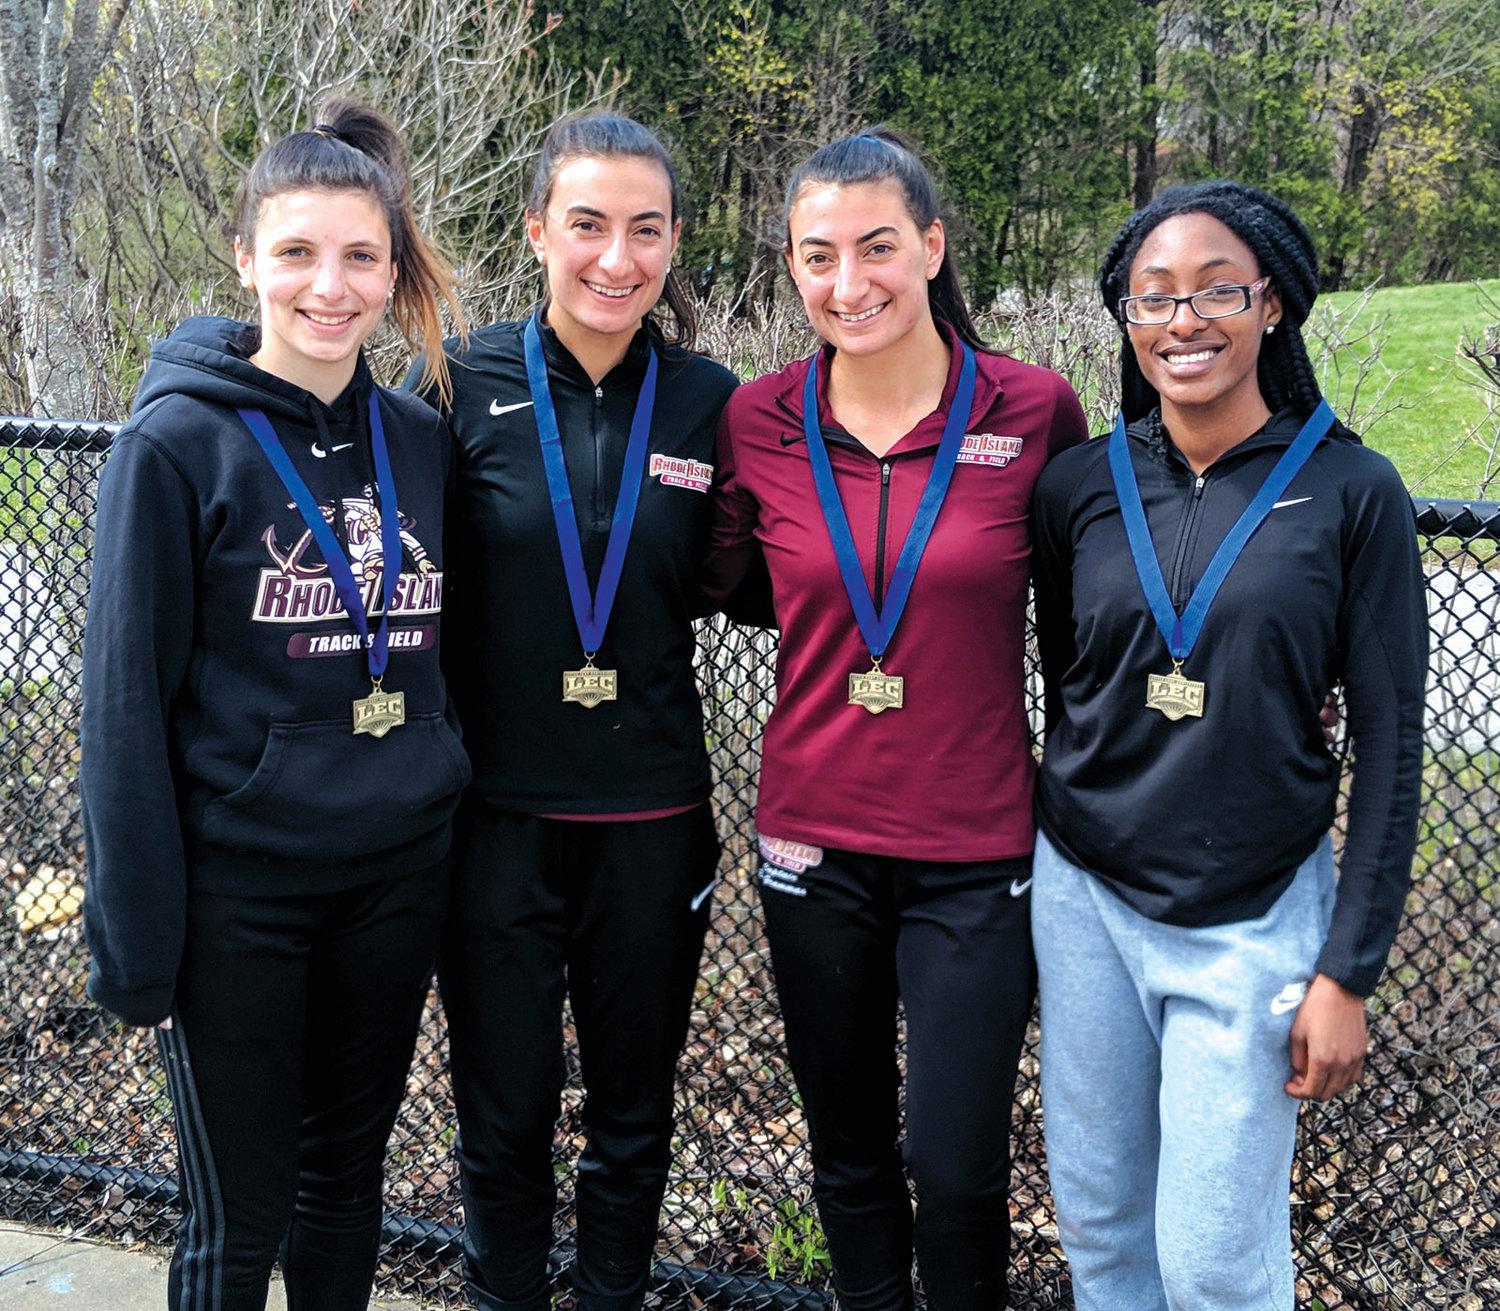 SUPER SQUAD: Emma Landroche, Nicole Grammas, Eleni Grammas and Tiffany Hayes combined their talents and won the 4x400m relay in 4:02.30 to help the Rhode Island College Anchorwomen win the prestigious New England Women's Track Alliance and Little East Conference championships last weekend in Fitchburg, Ma.